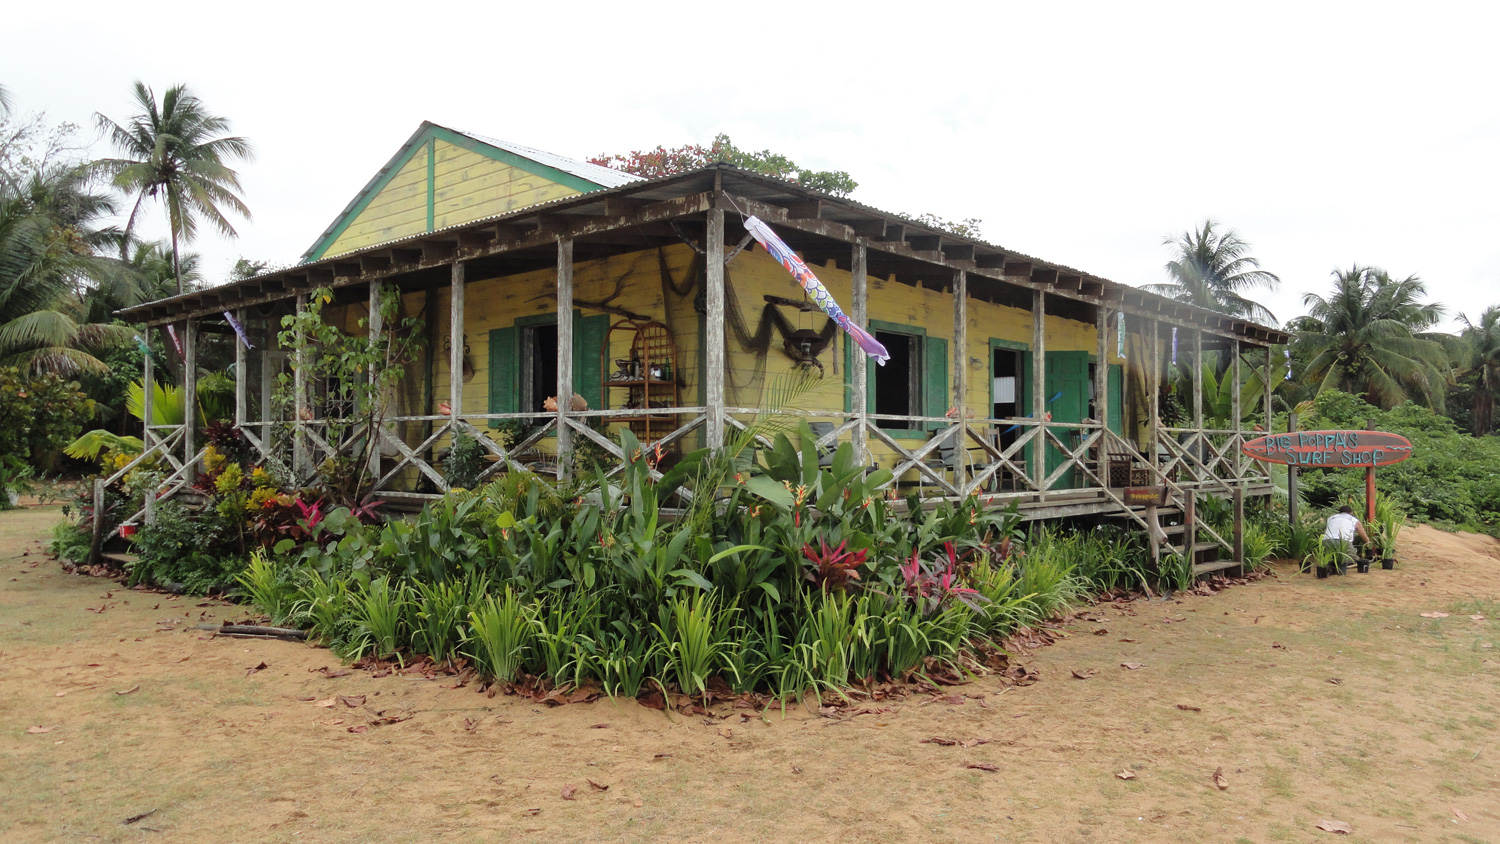 The beginning and end scenes in Teen Beach Movie take place on the same beach as the 1962 period scenes, but in modern times. This is Big Poppa's (Barry Bostwick) surf shop, a home and workshop he shares with his grandaughter McKenzie (Maia Mitchell). After the 1962 portion of the shooting schedule was complete, we had just six days to tear down Big Momma's exterior, and build this interior/exterior house, complete with dressing and greens before the company returned to complete shooting.